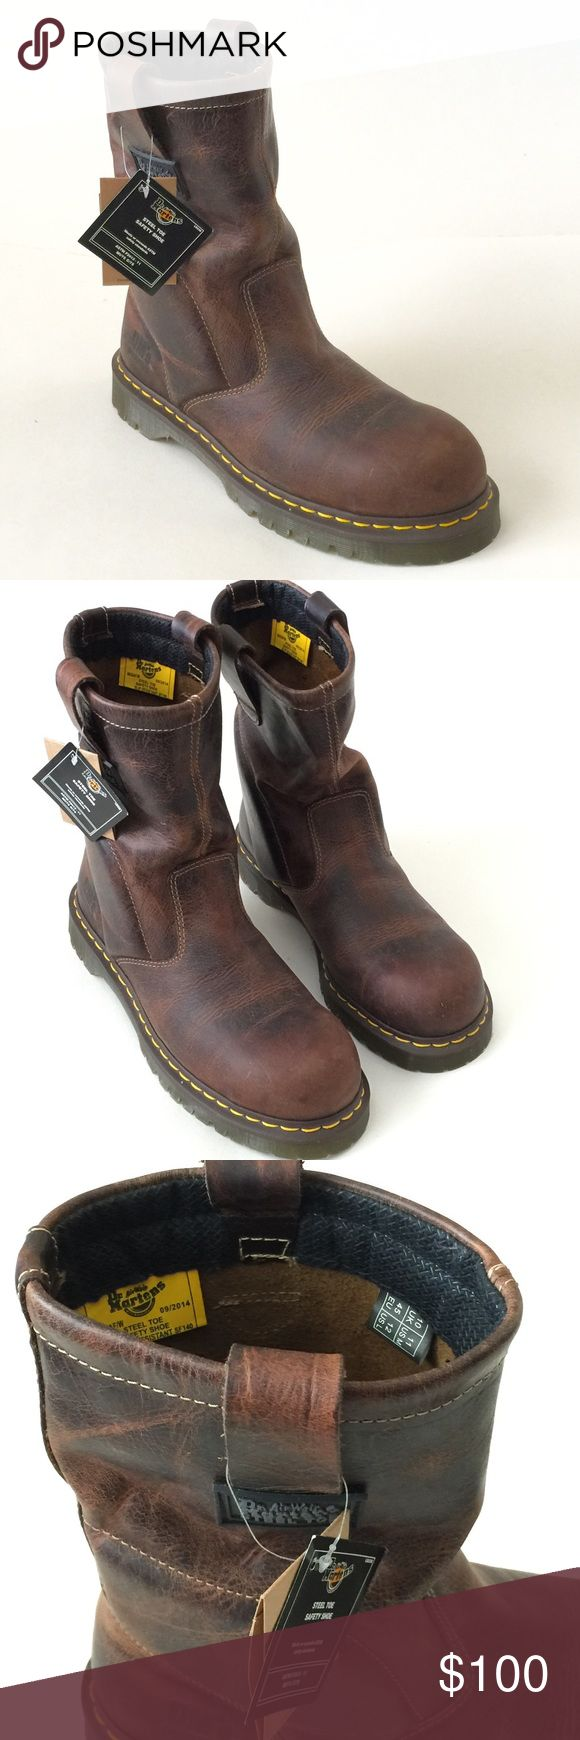 Dr Martens brown safety toe size us 11 boots Dr Martens safety toe brown tall boots. Size Us 11 new with tags no box Dr. Martens Shoes Boots